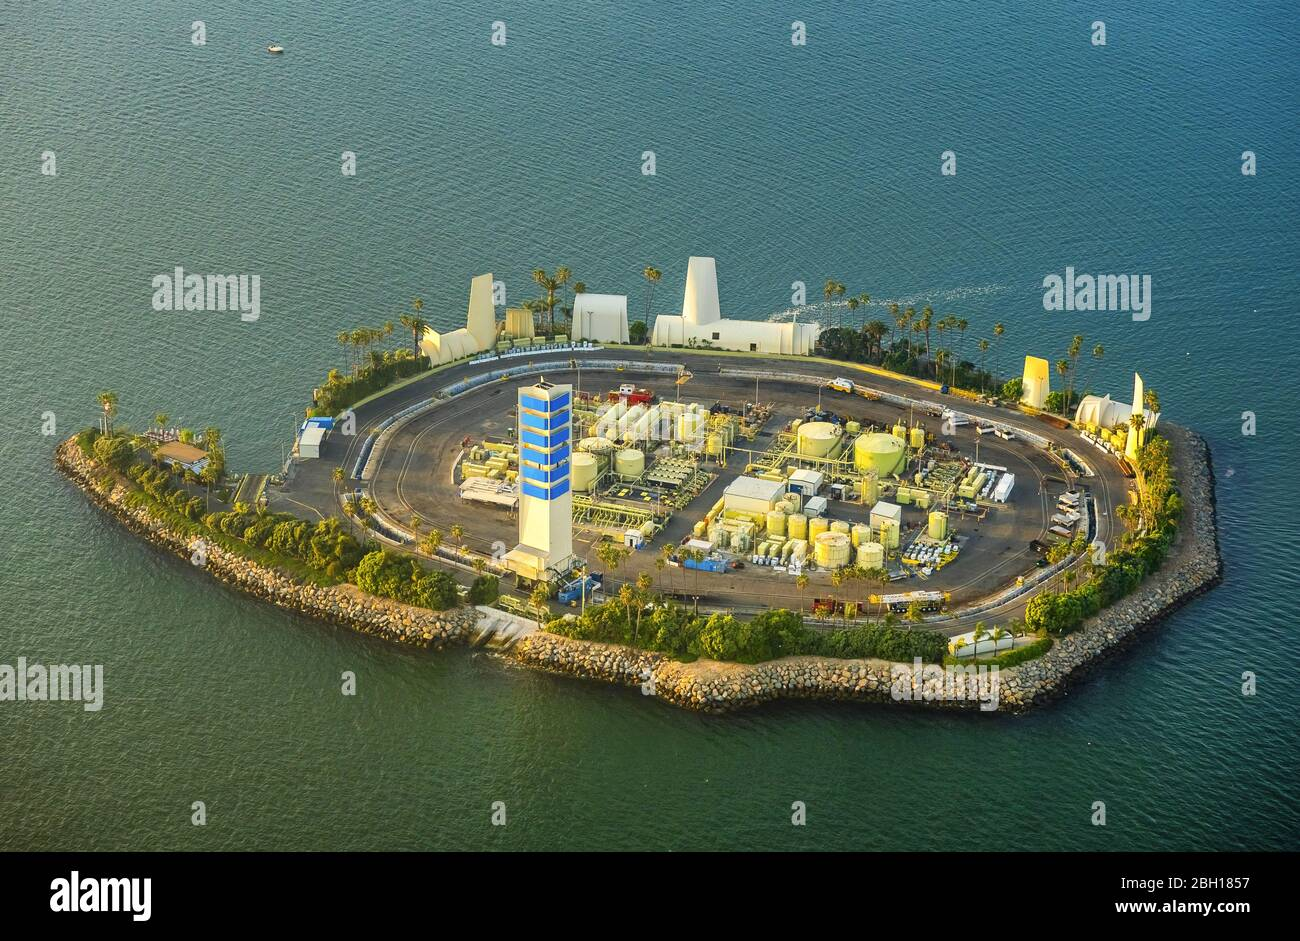 , Artificial island Island White with oil refinery facilities in San Pedro Bay in front of the coast of Long Beach, 20.03.2016, aerial view, USA, California, Long Beach Stock Photo